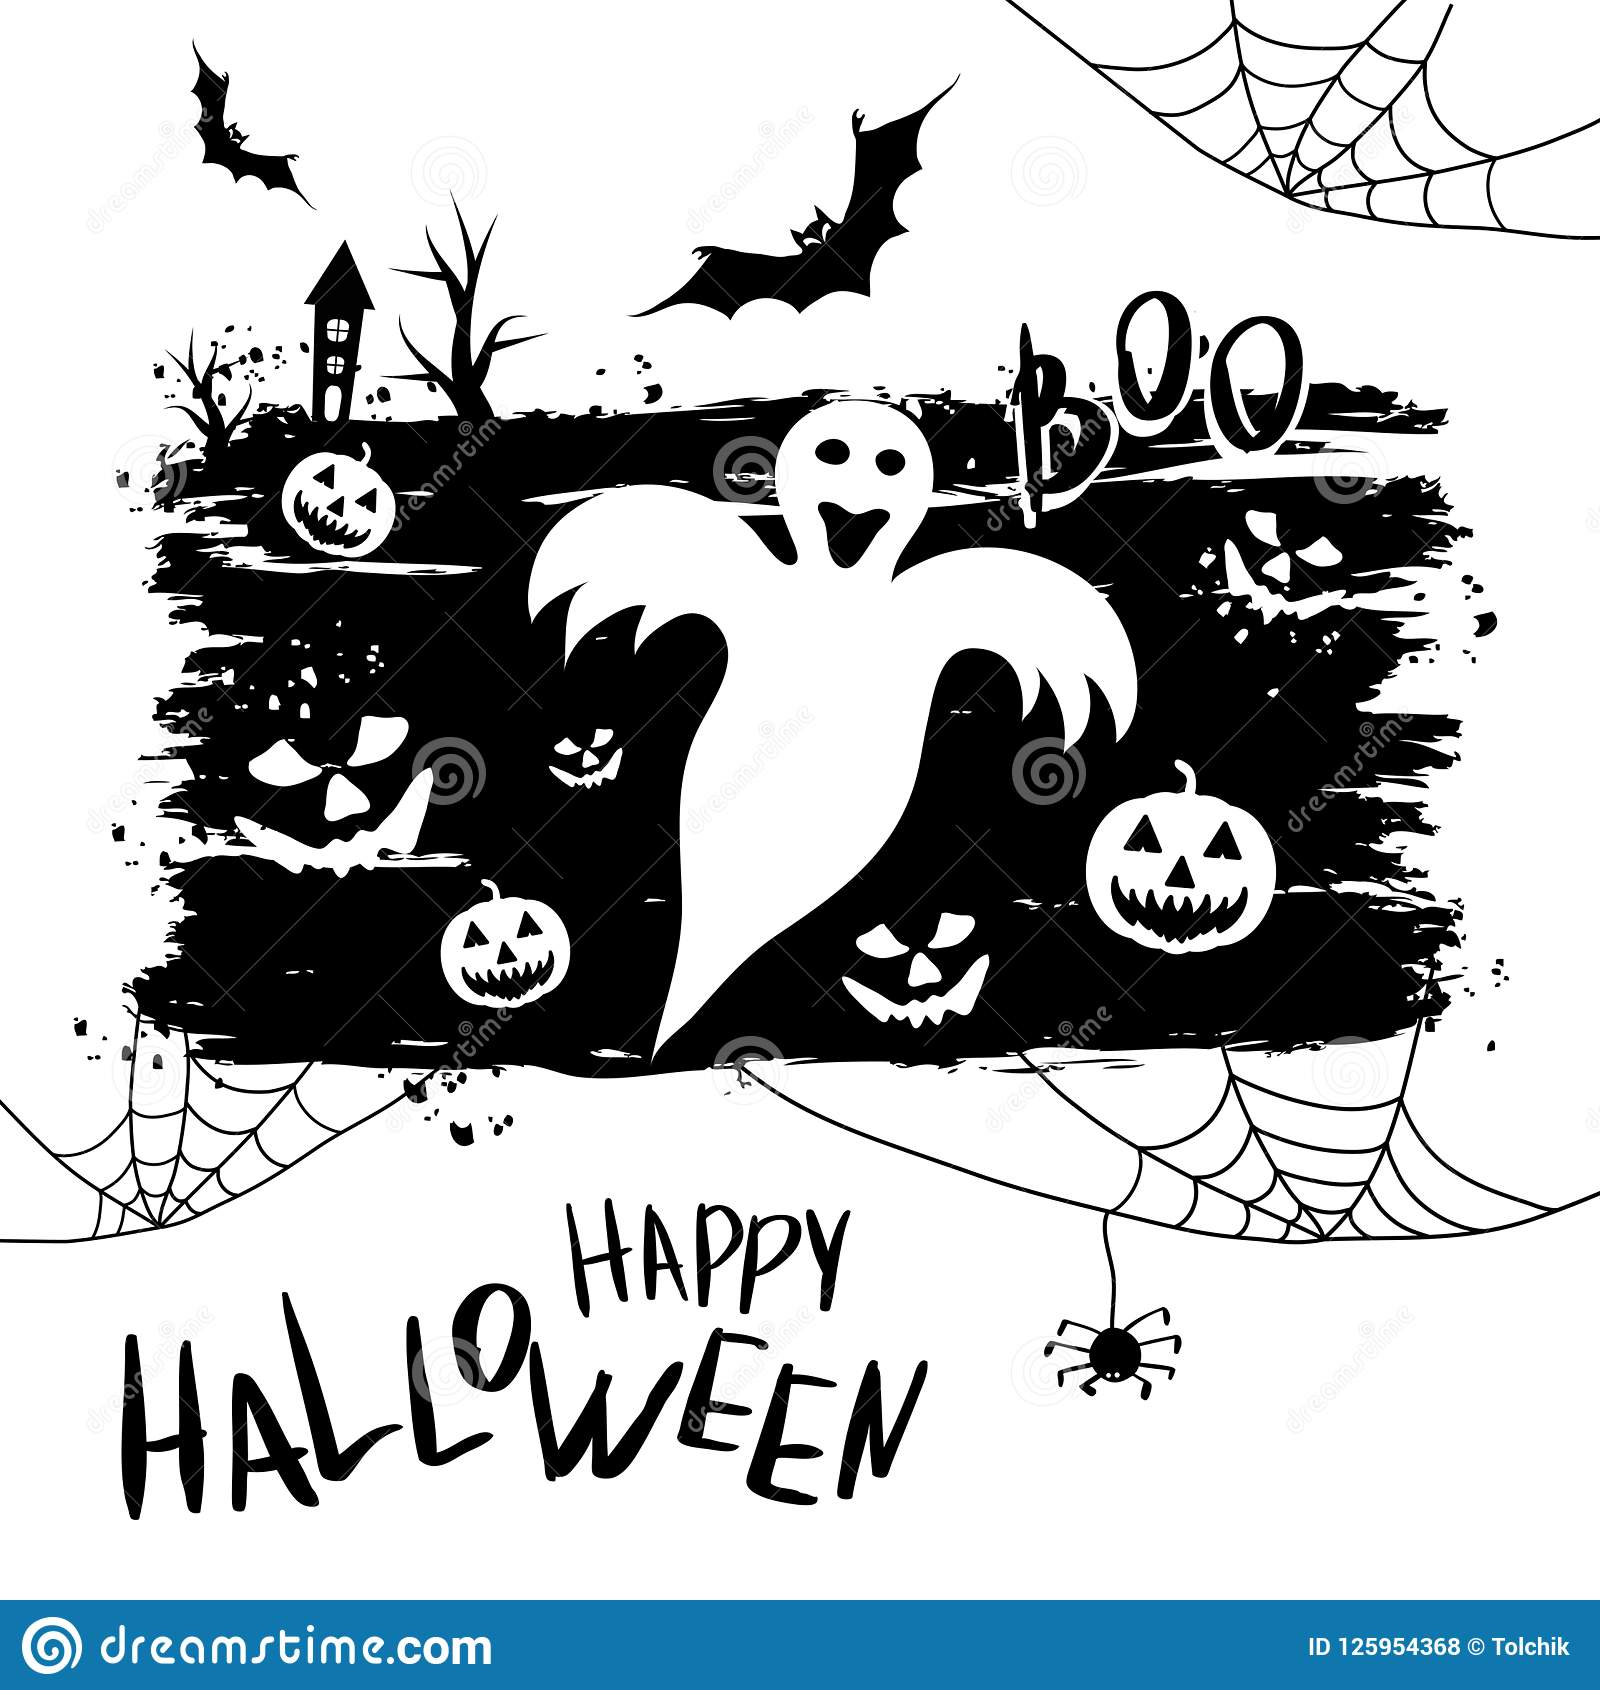 download happy halloween template for banner or poster vector illustrat stock vector illustration of